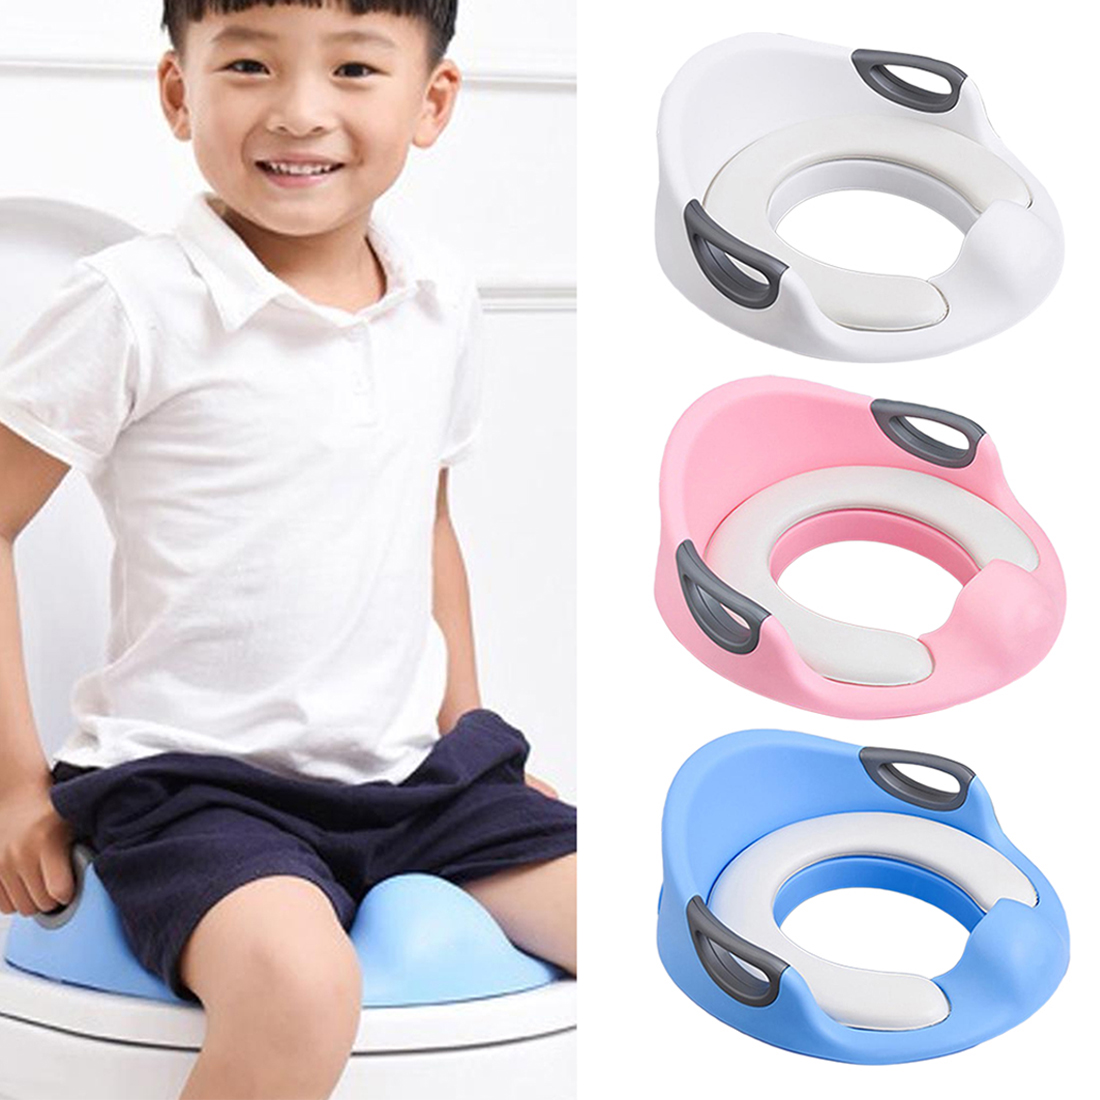 Child Multifunctional Potty Baby Travel Potty Training Seat Portable Toilet Ring Kid Urinal Comfortable Assistant ToileChild Multifunctional Potty Baby Travel Potty Training Seat Portable Toilet Ring Kid Urinal Comfortable Assistant Toile